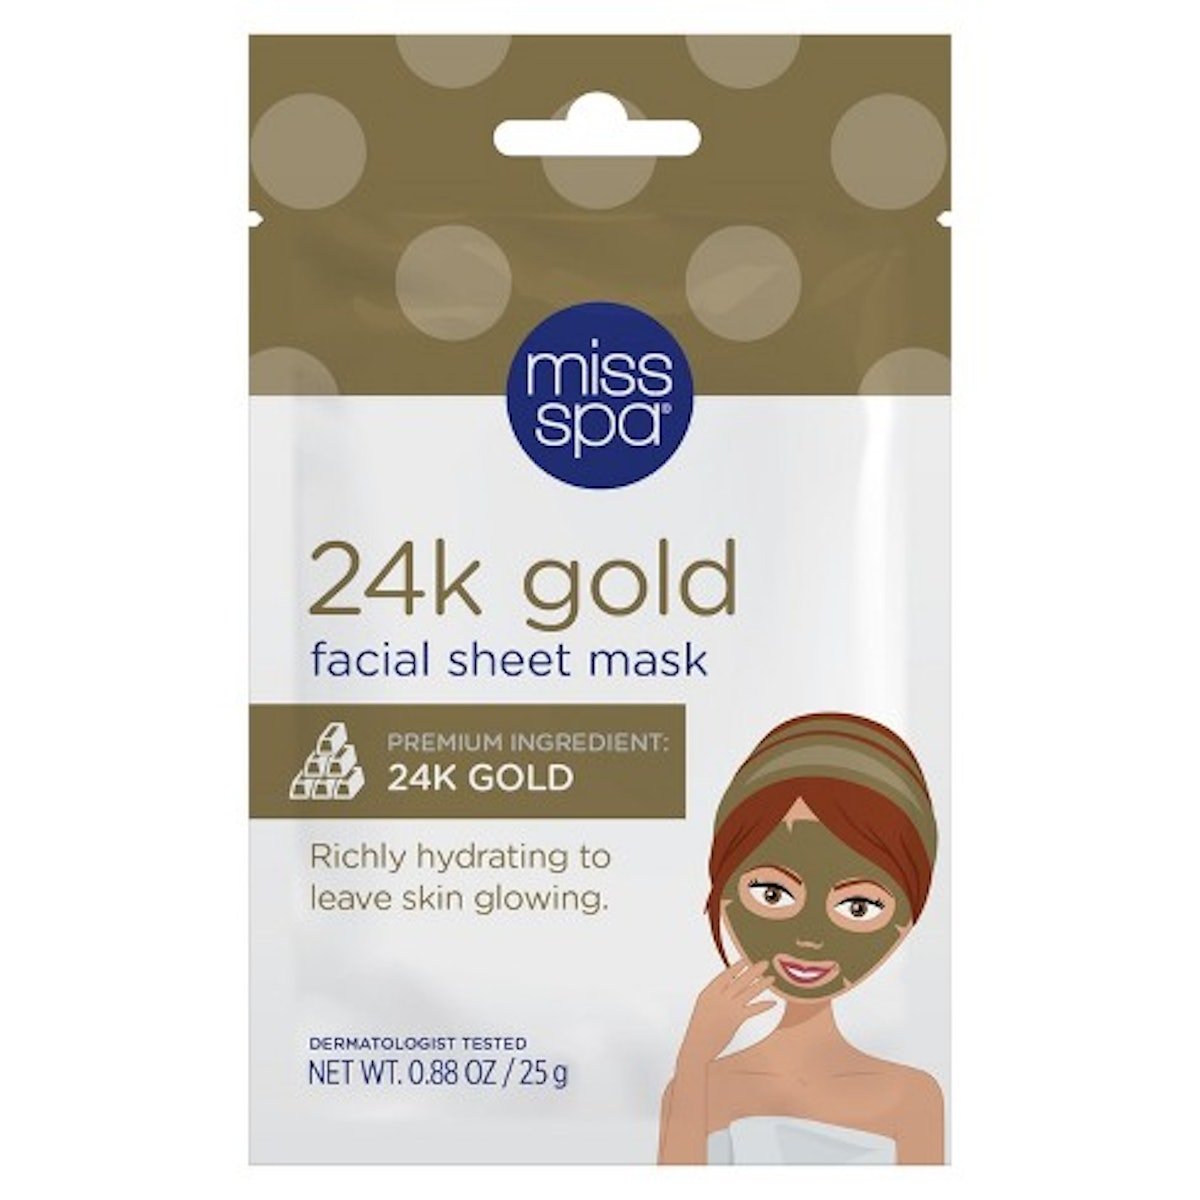 Miss Spa Restore and Brighten 24k Gold Radiance Facial Sheet Mask